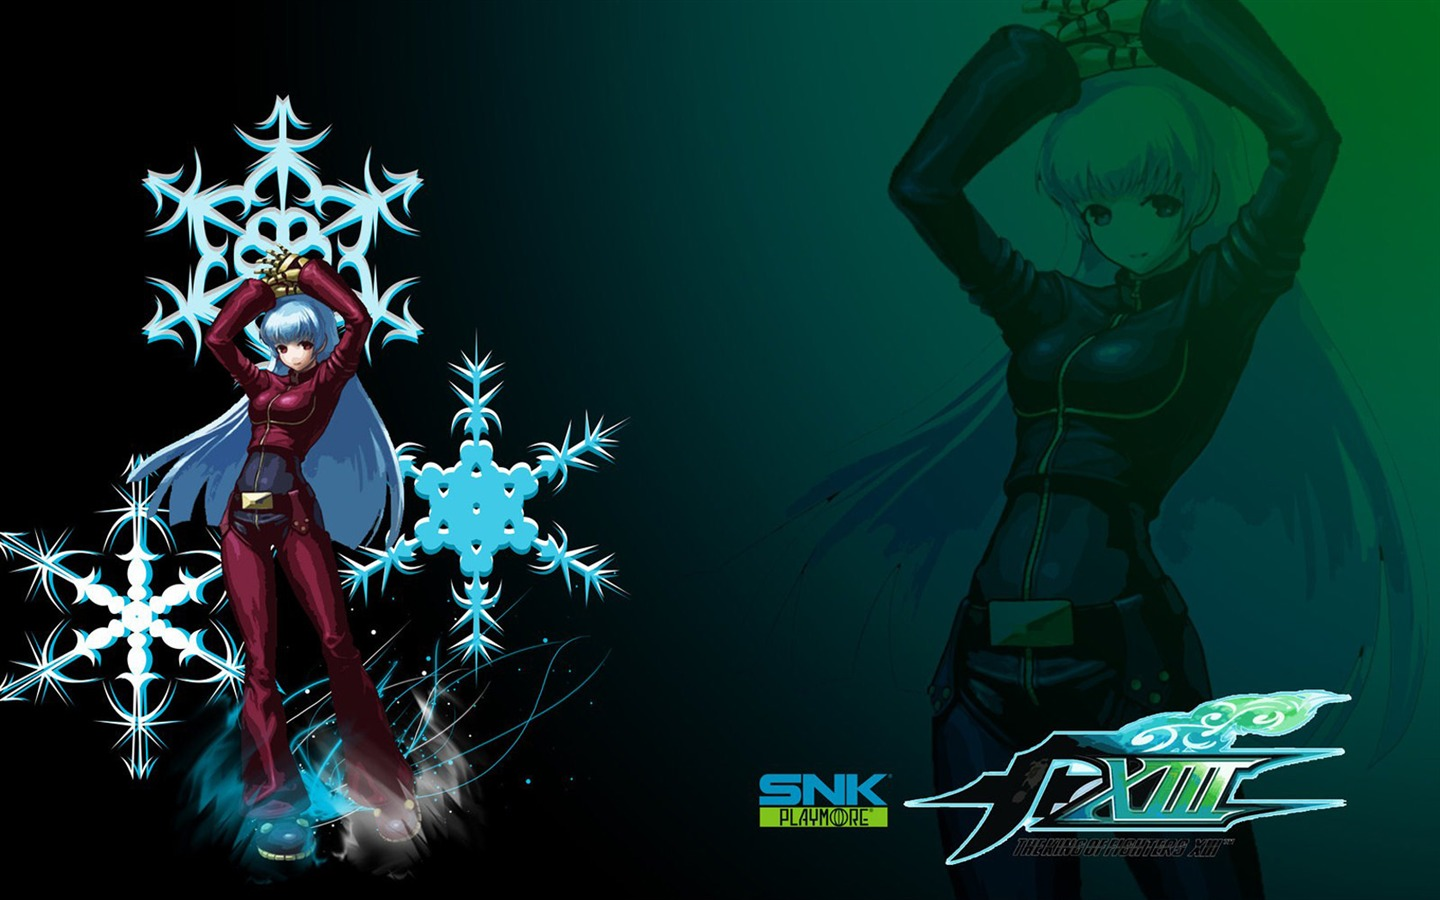 Free Download The King Of Fighters Xiii Wallpapers